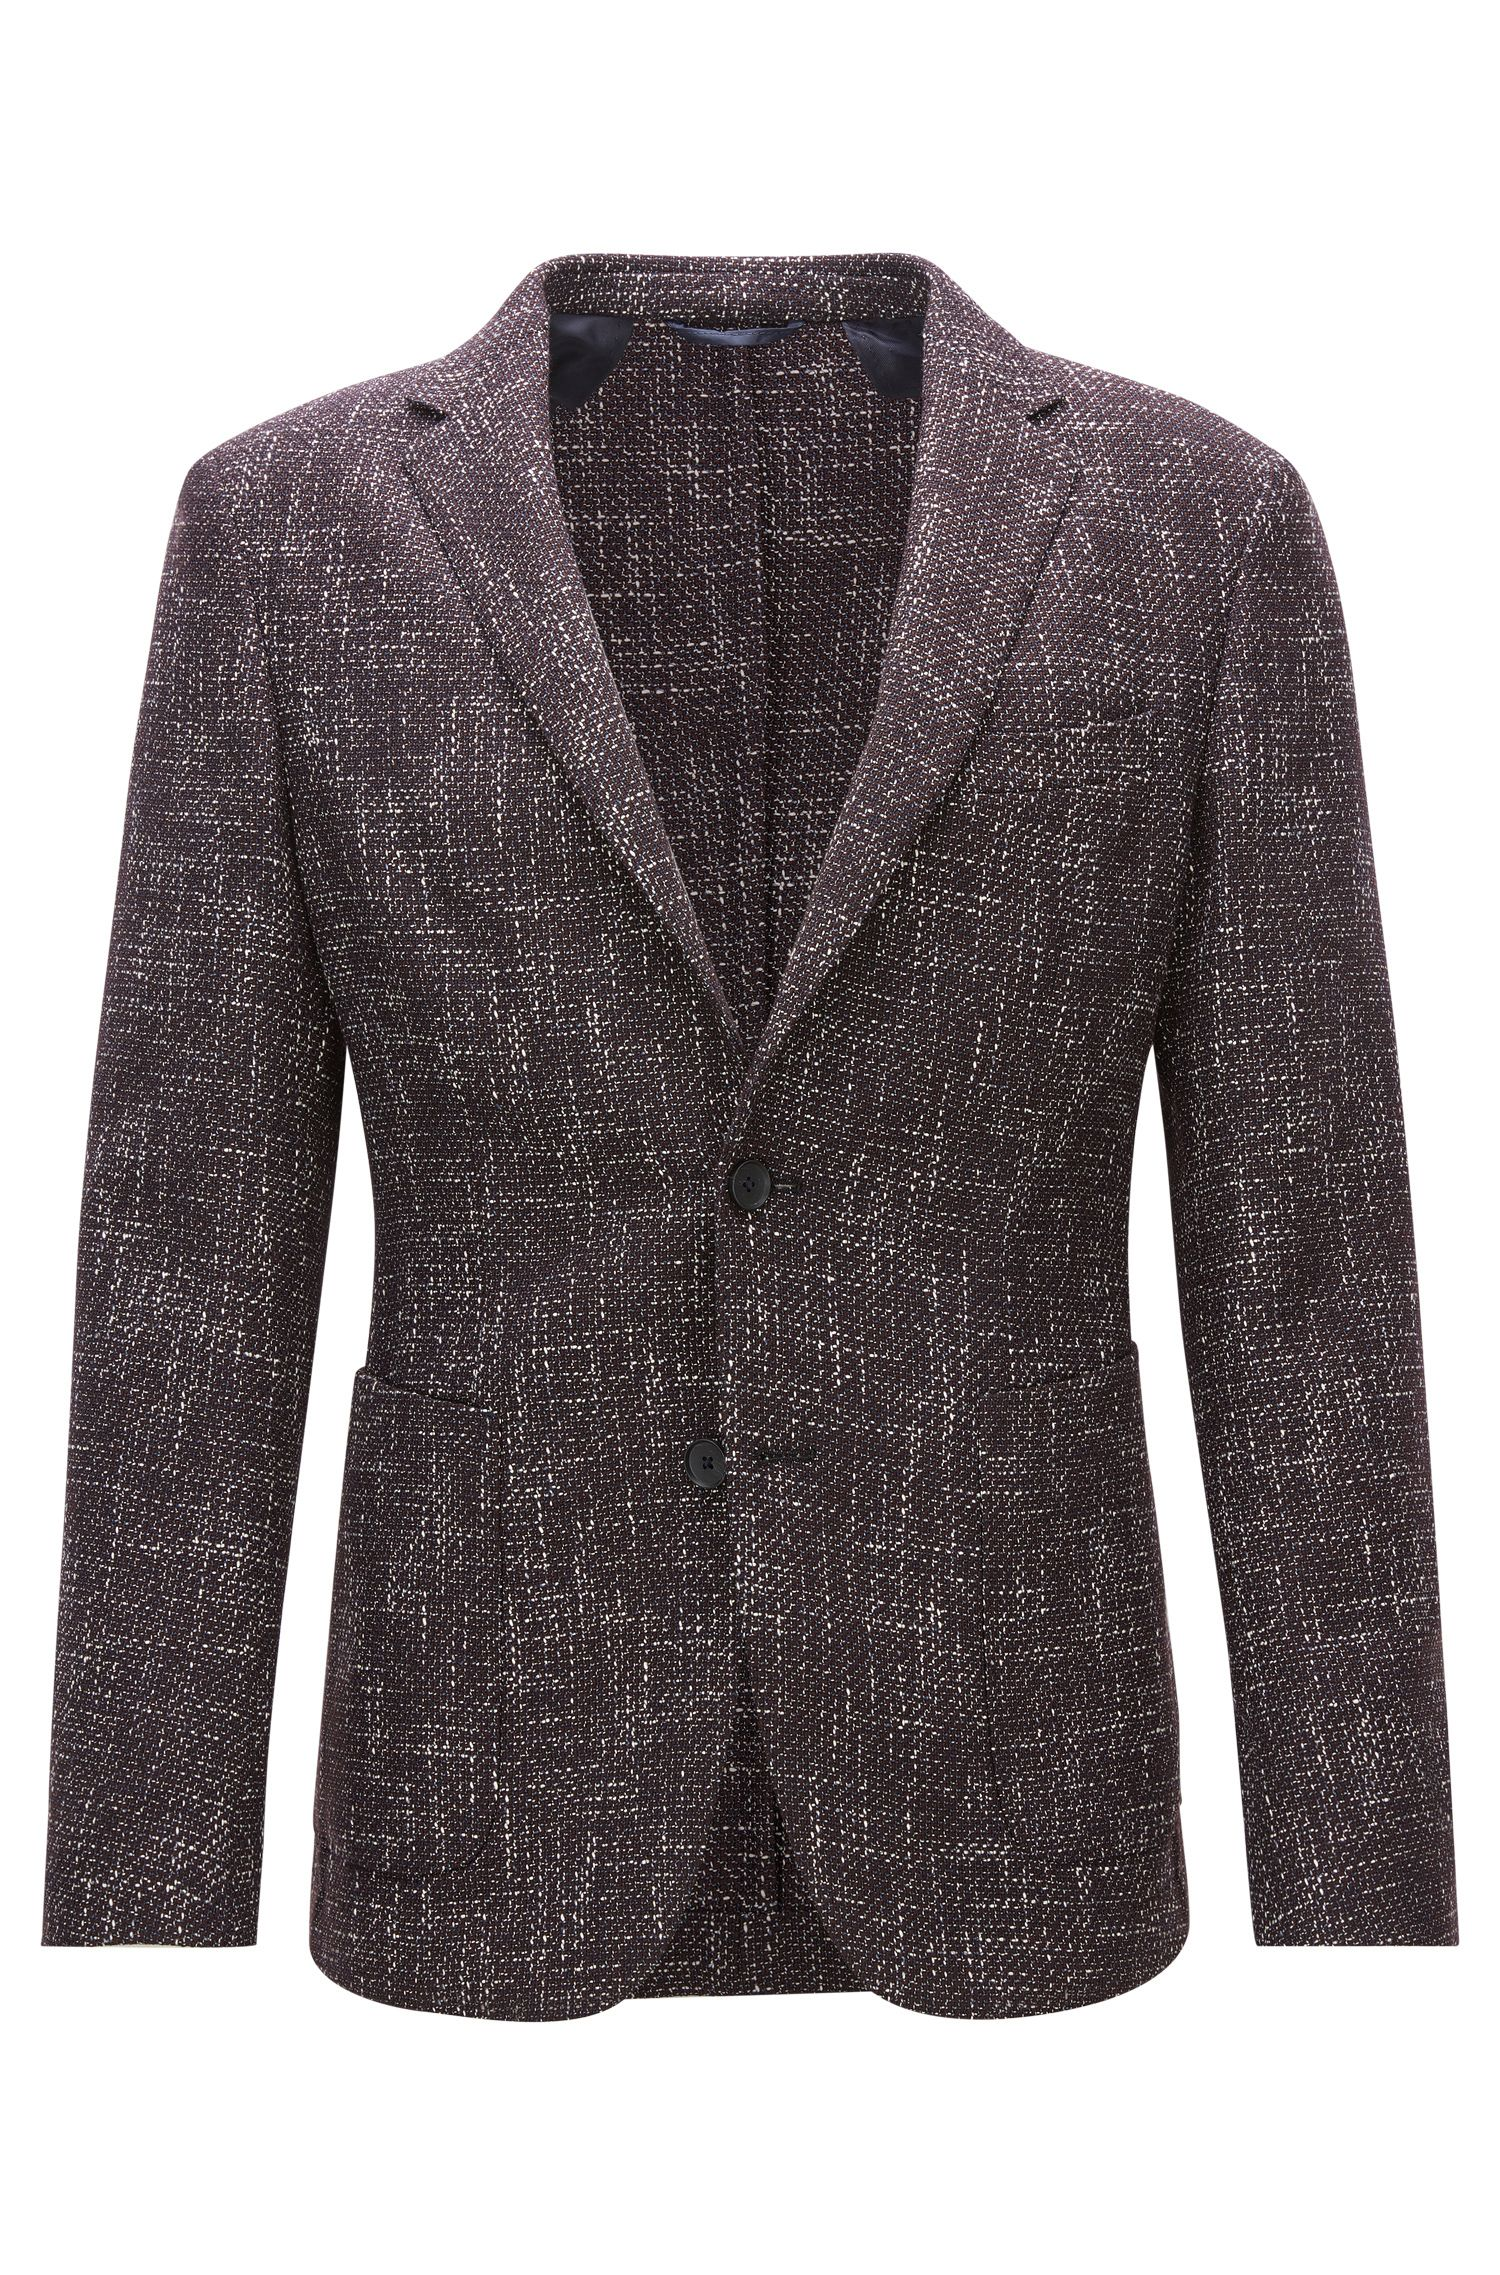 Slim-fit jacket in a mélange wool blend